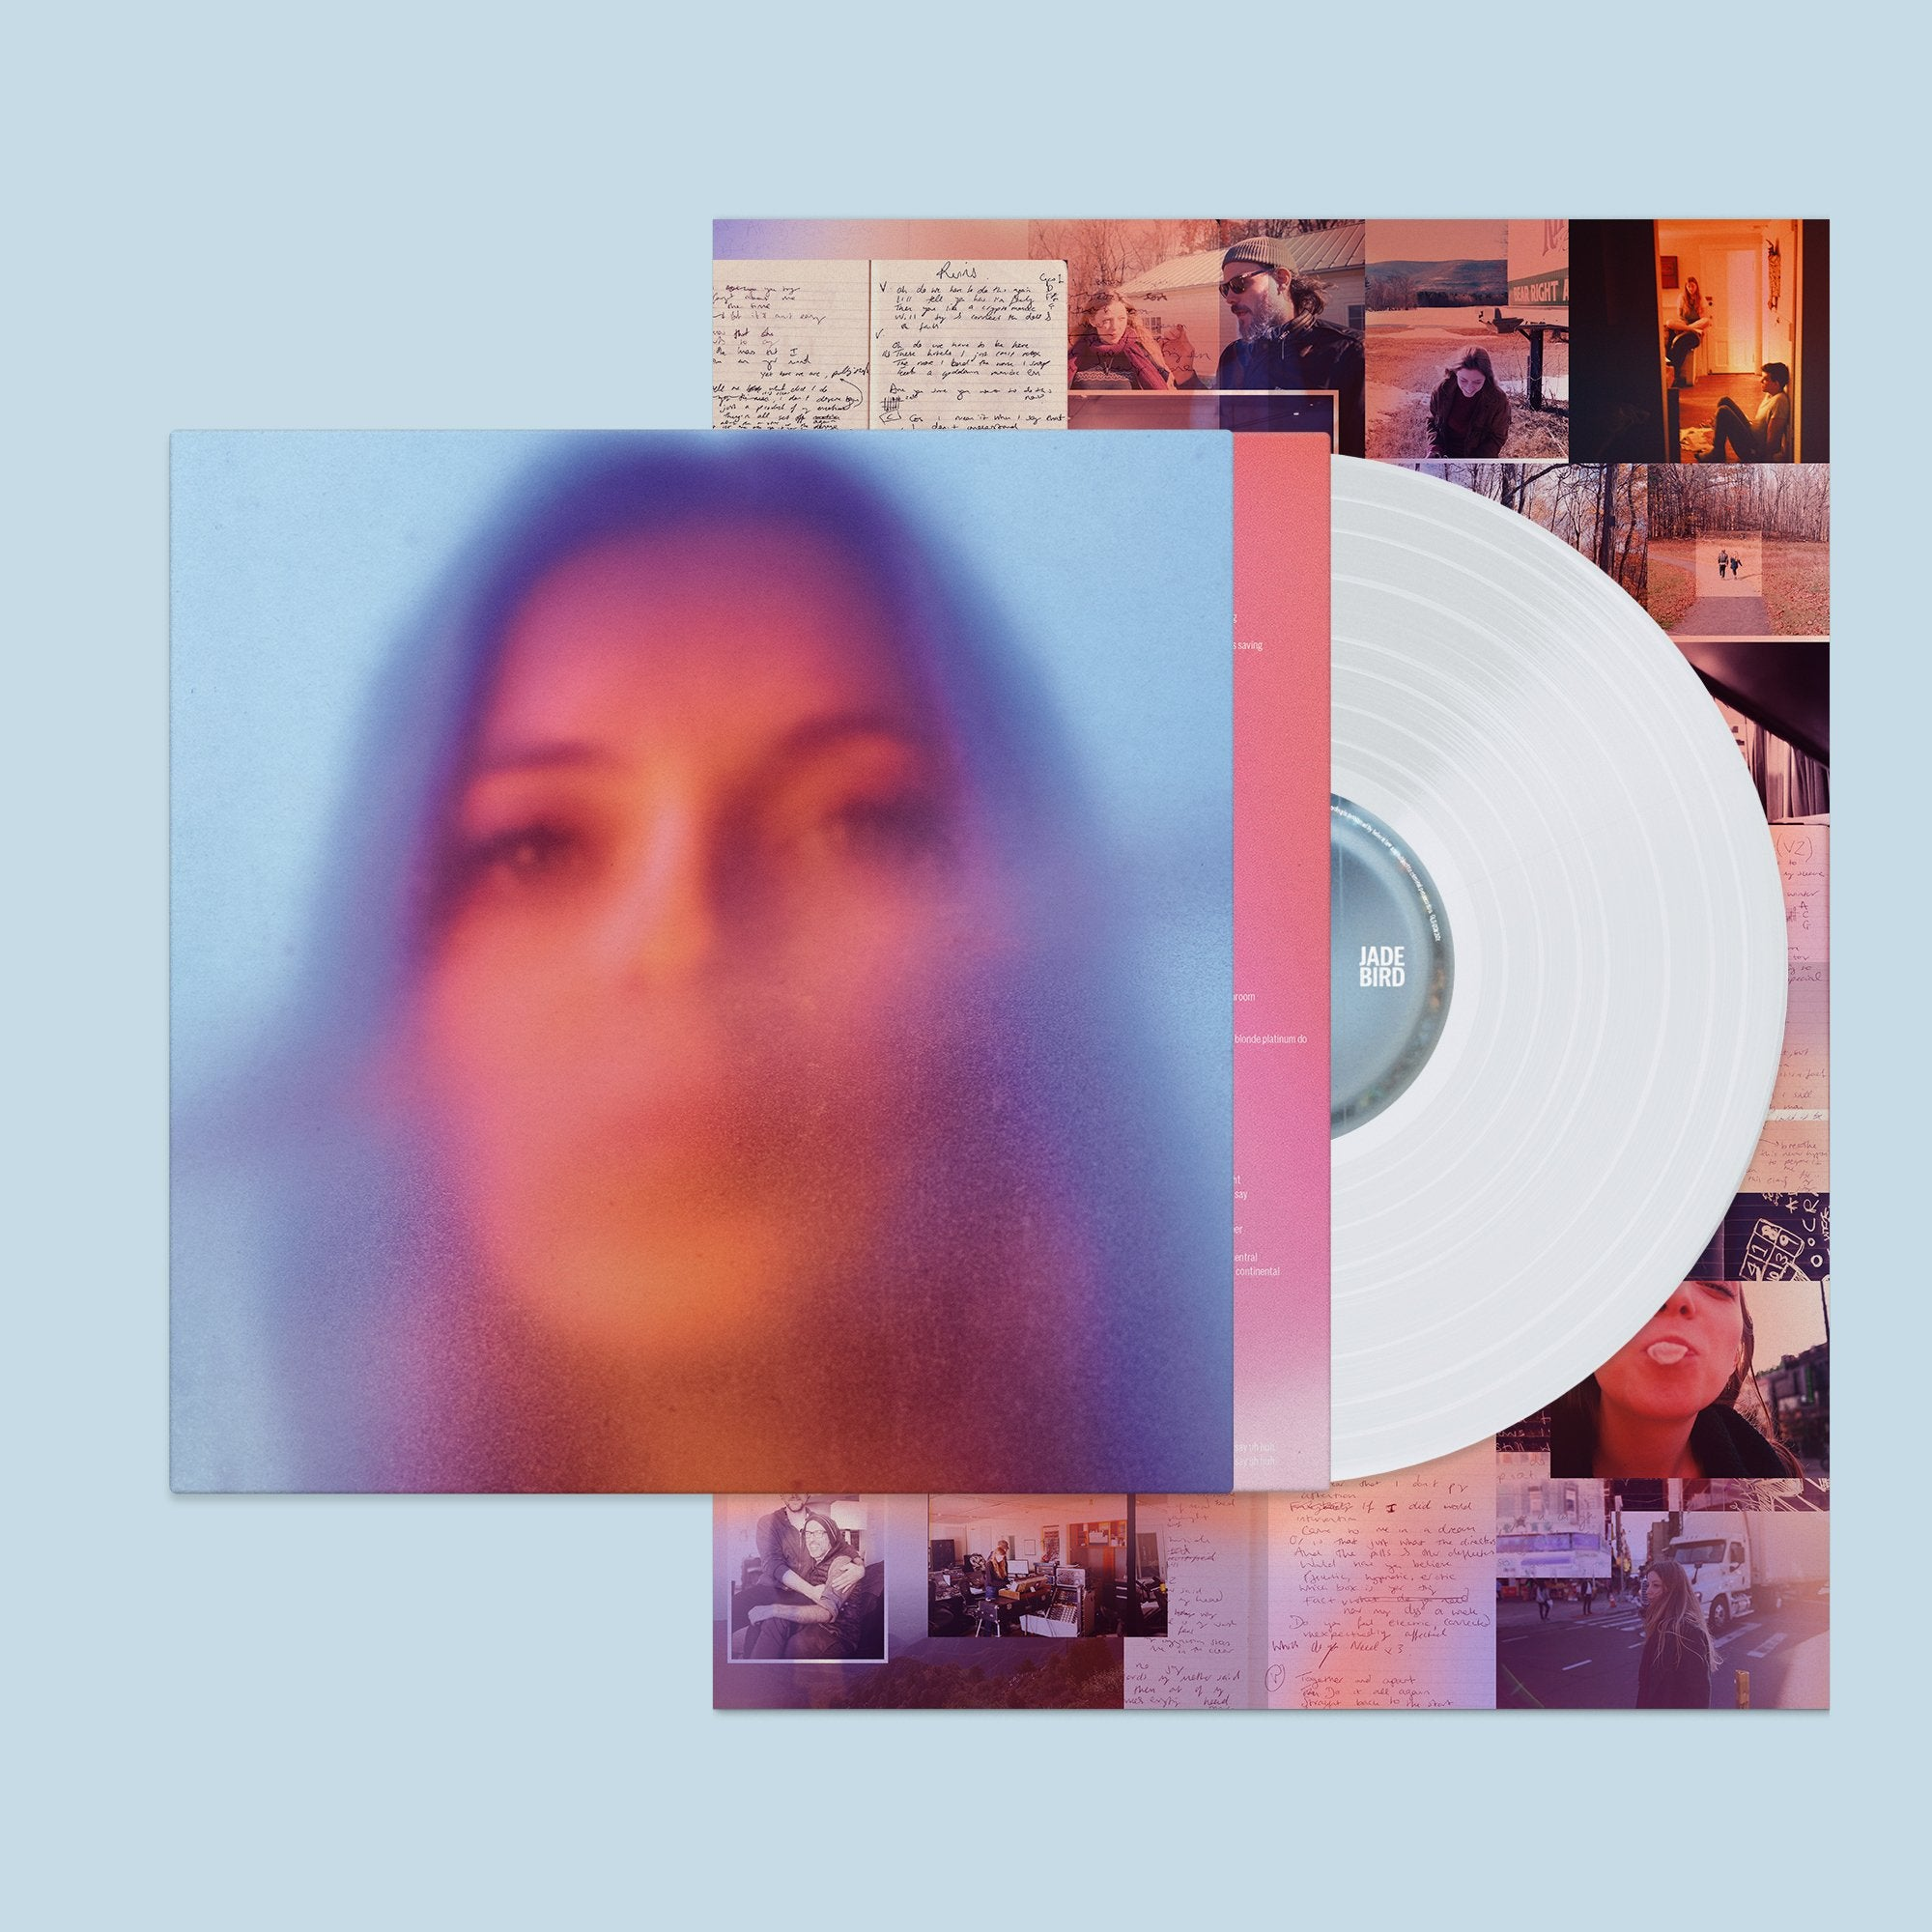 Jade Bird ‎– Jade Bird Limited Edition White Colour Vinyl Record Album, Vinyl, X-Records